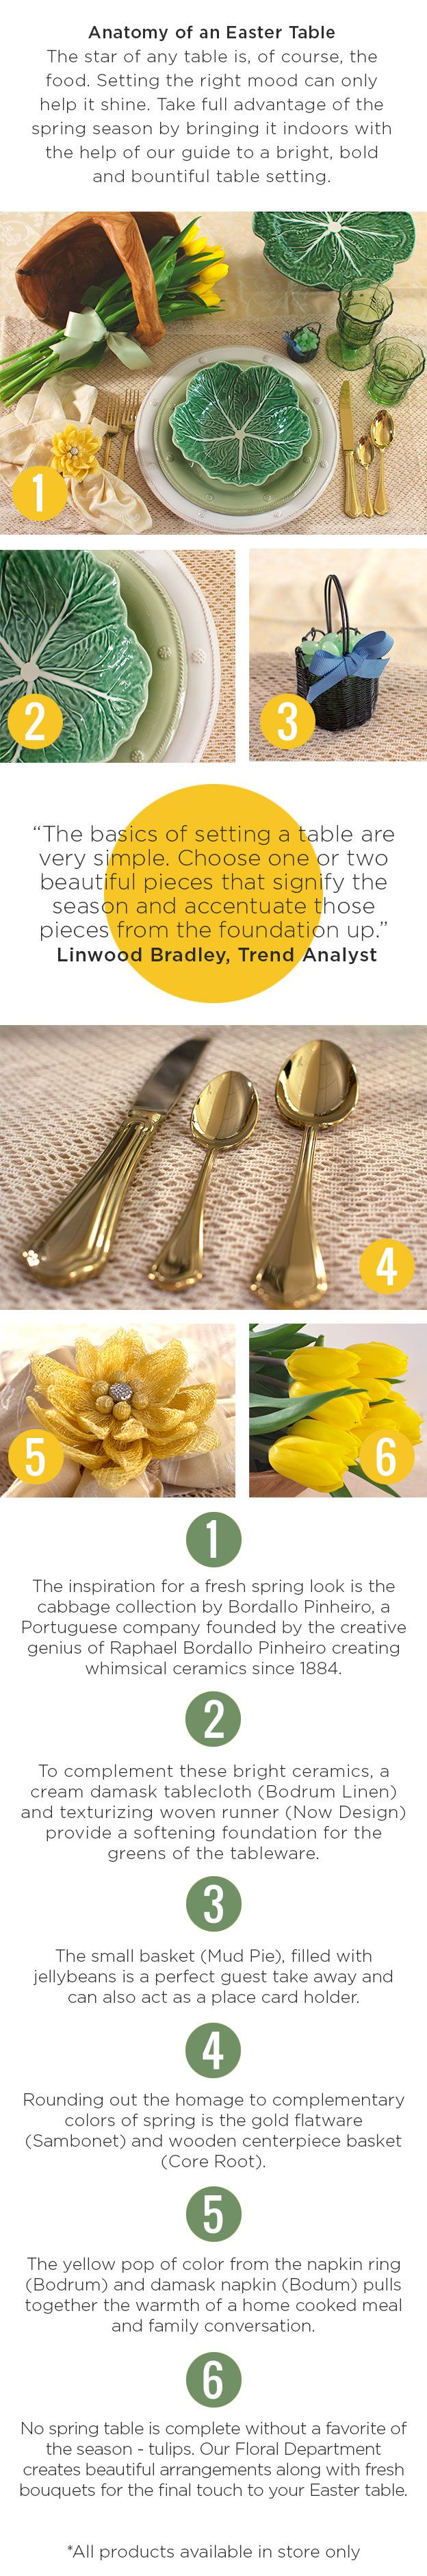 25 best easter gifts images on pinterest easter gift favors and gifs set the table for spring our how to guide on how to design an easter negle Image collections